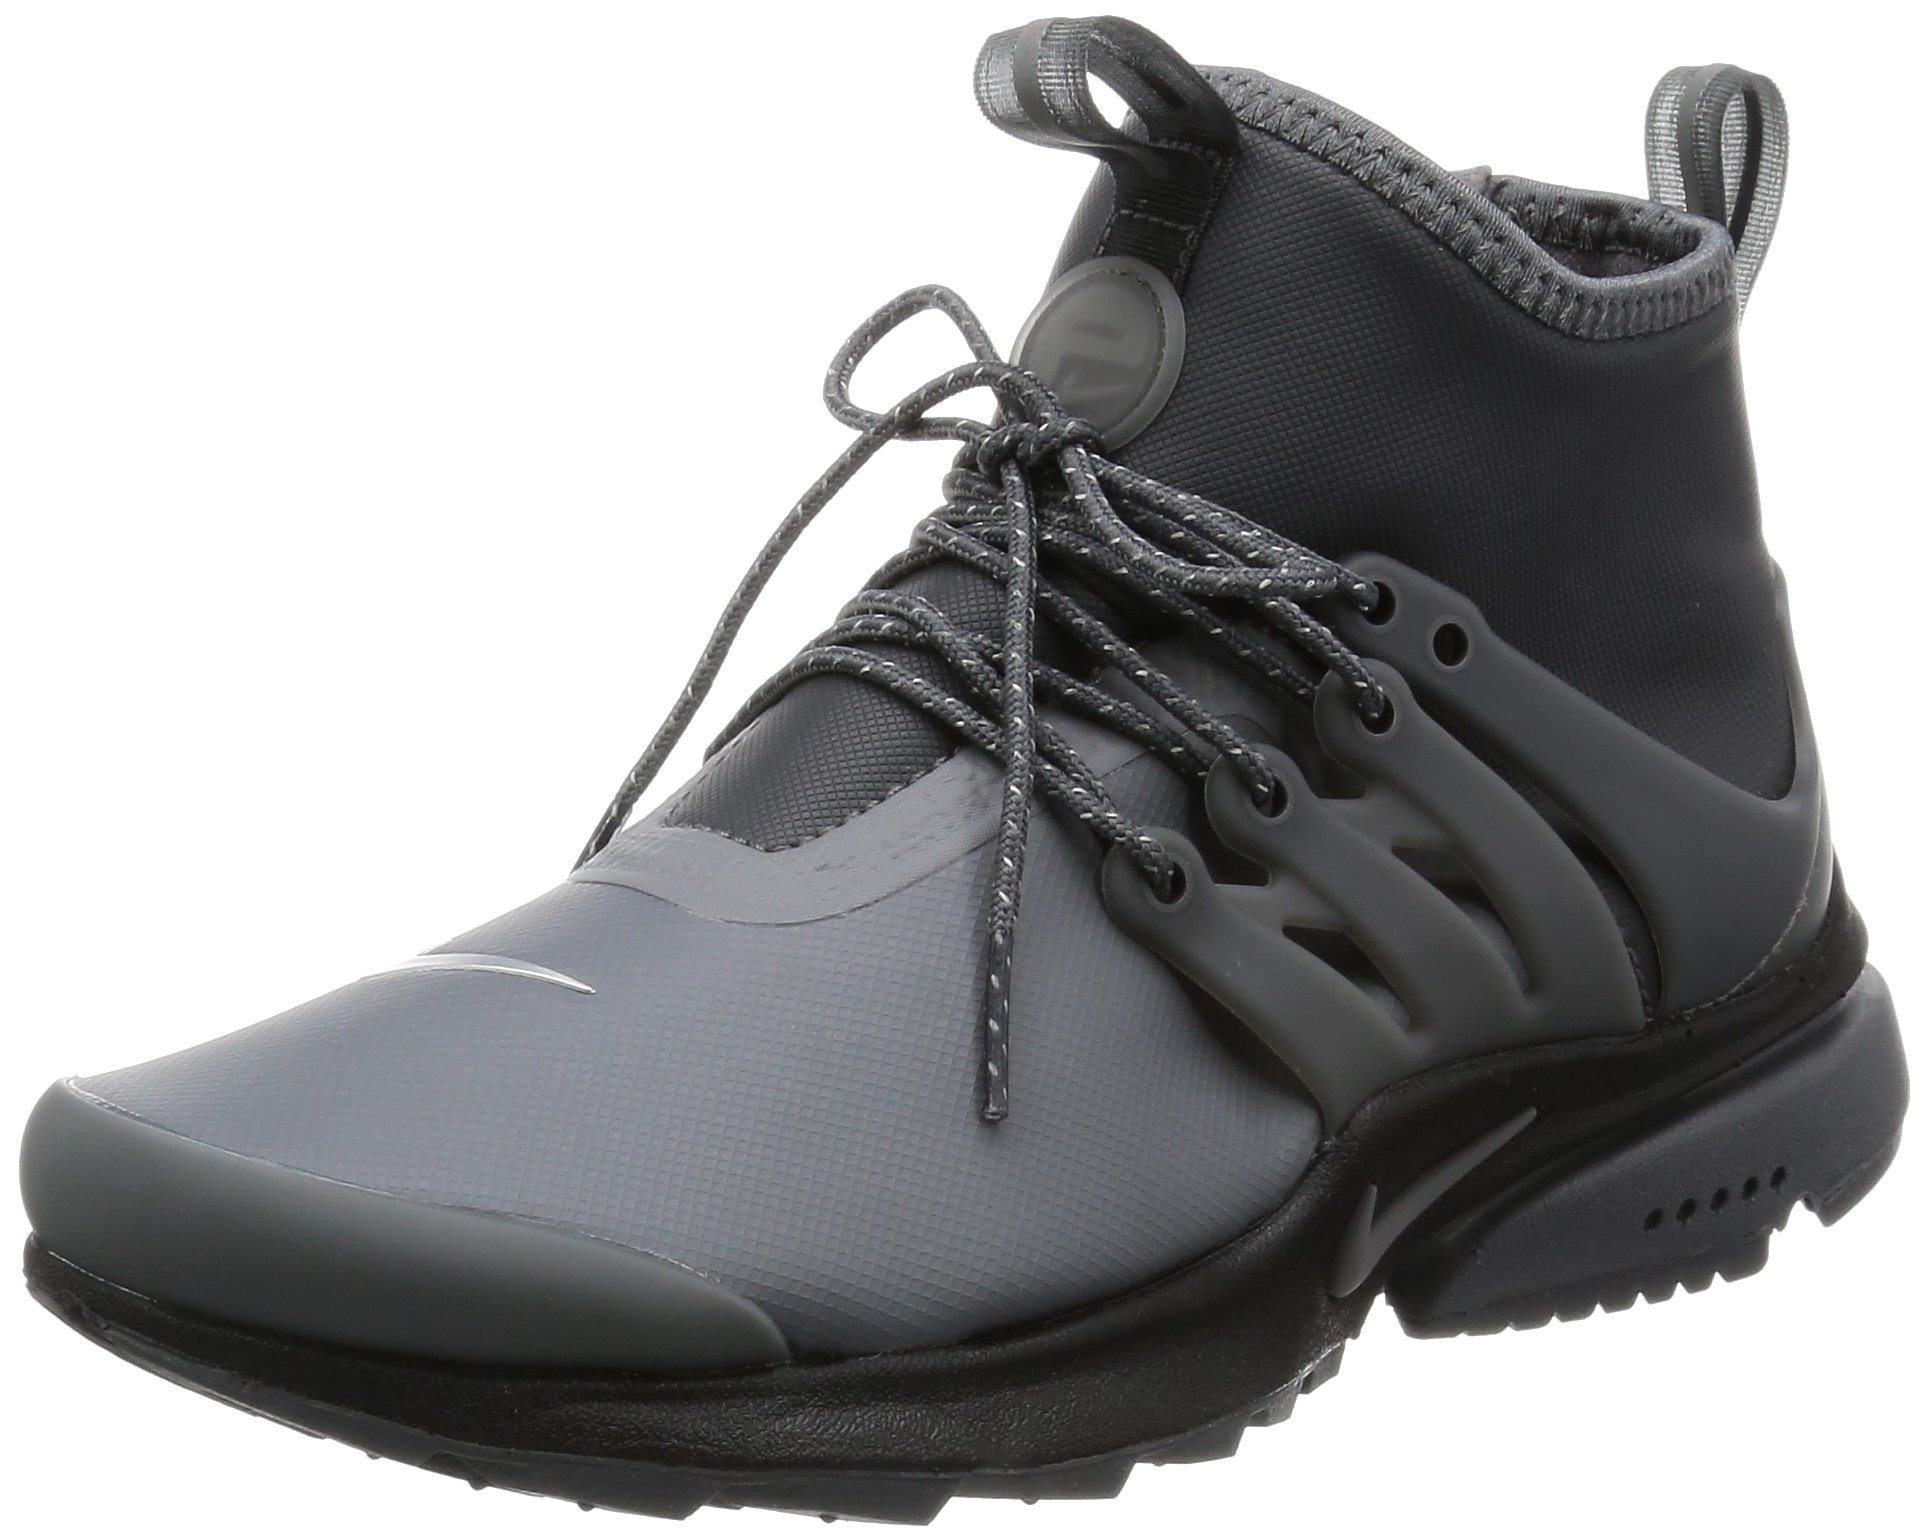 finest selection b3c43 09d0f Galleon - Nike Air Presto Mid Utility Womens Style  859527-001 Size  8